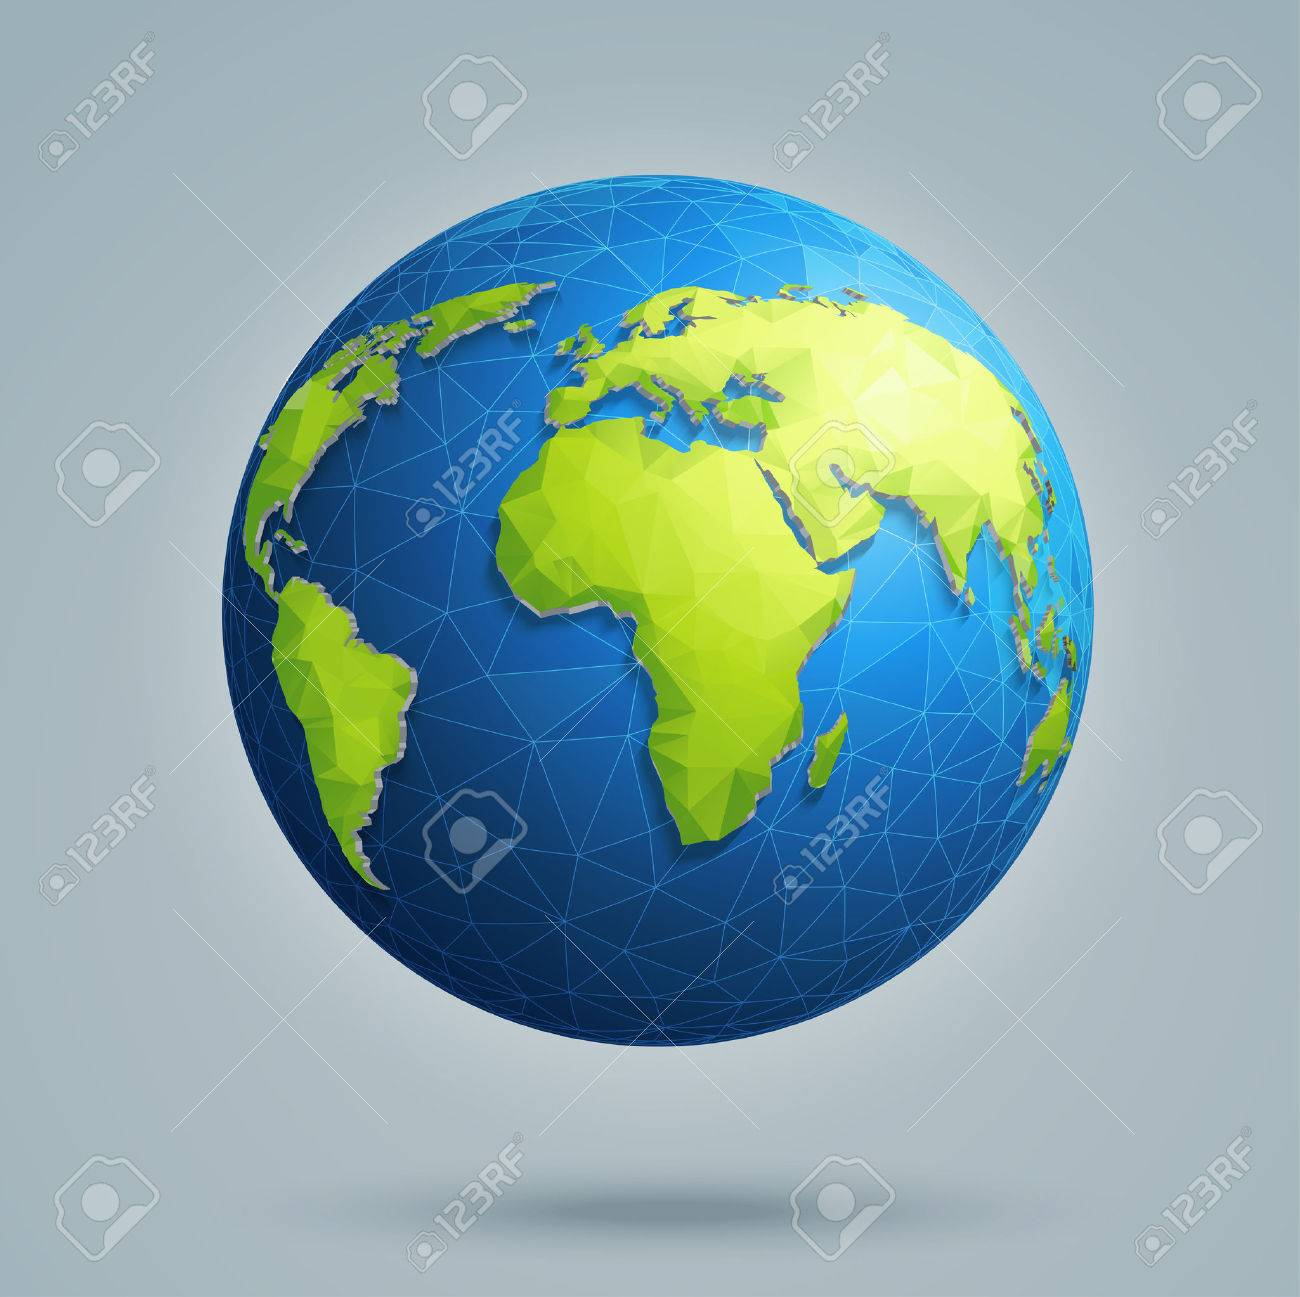 Polygonal 3D globe with global connections. Earth, world map. - 59040301